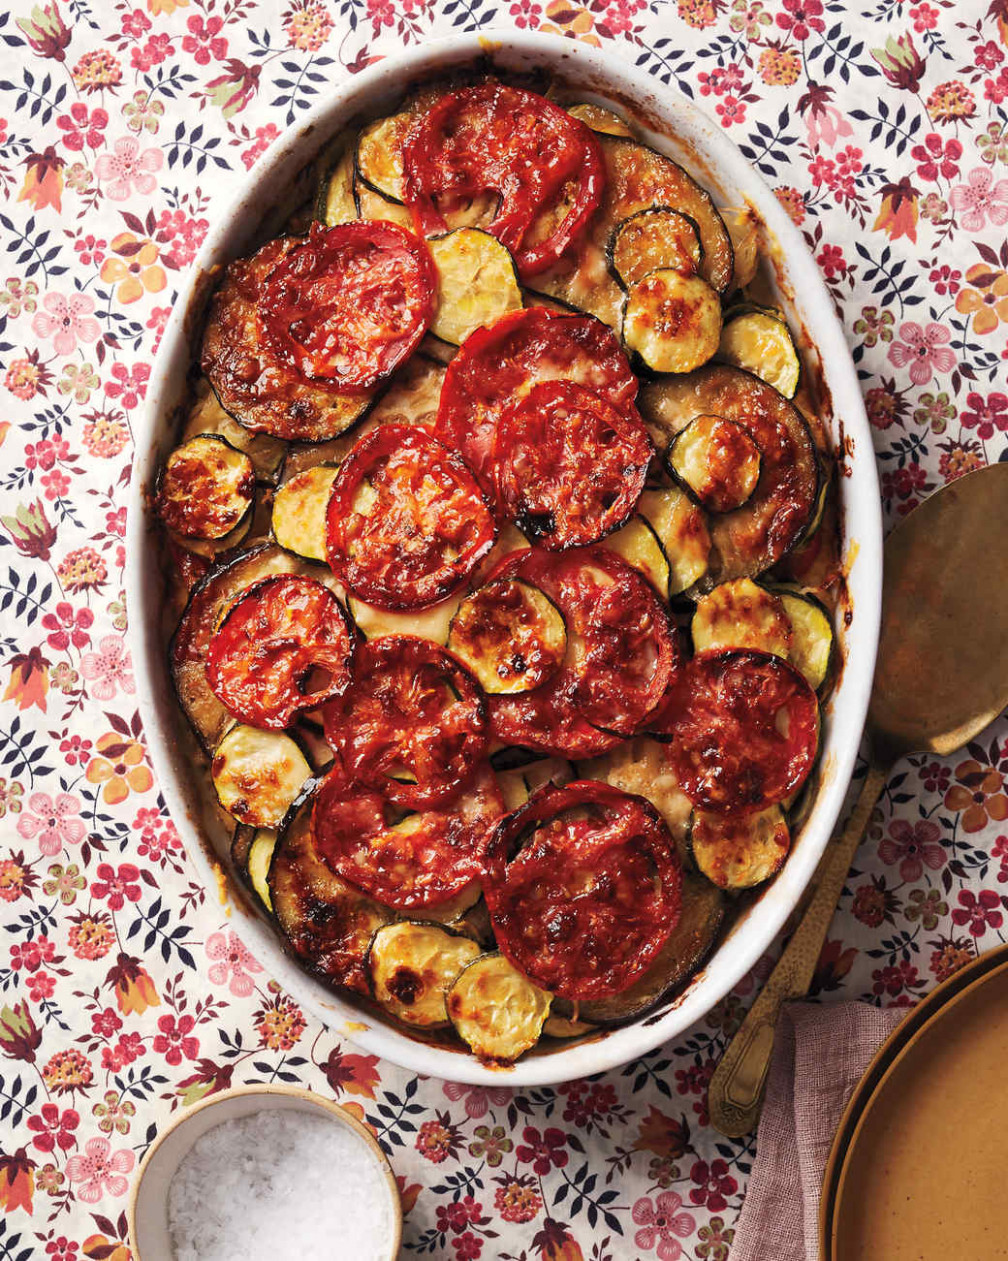 25 Vegetable Casserole Recipes That Are Guaranteed Crowd ..